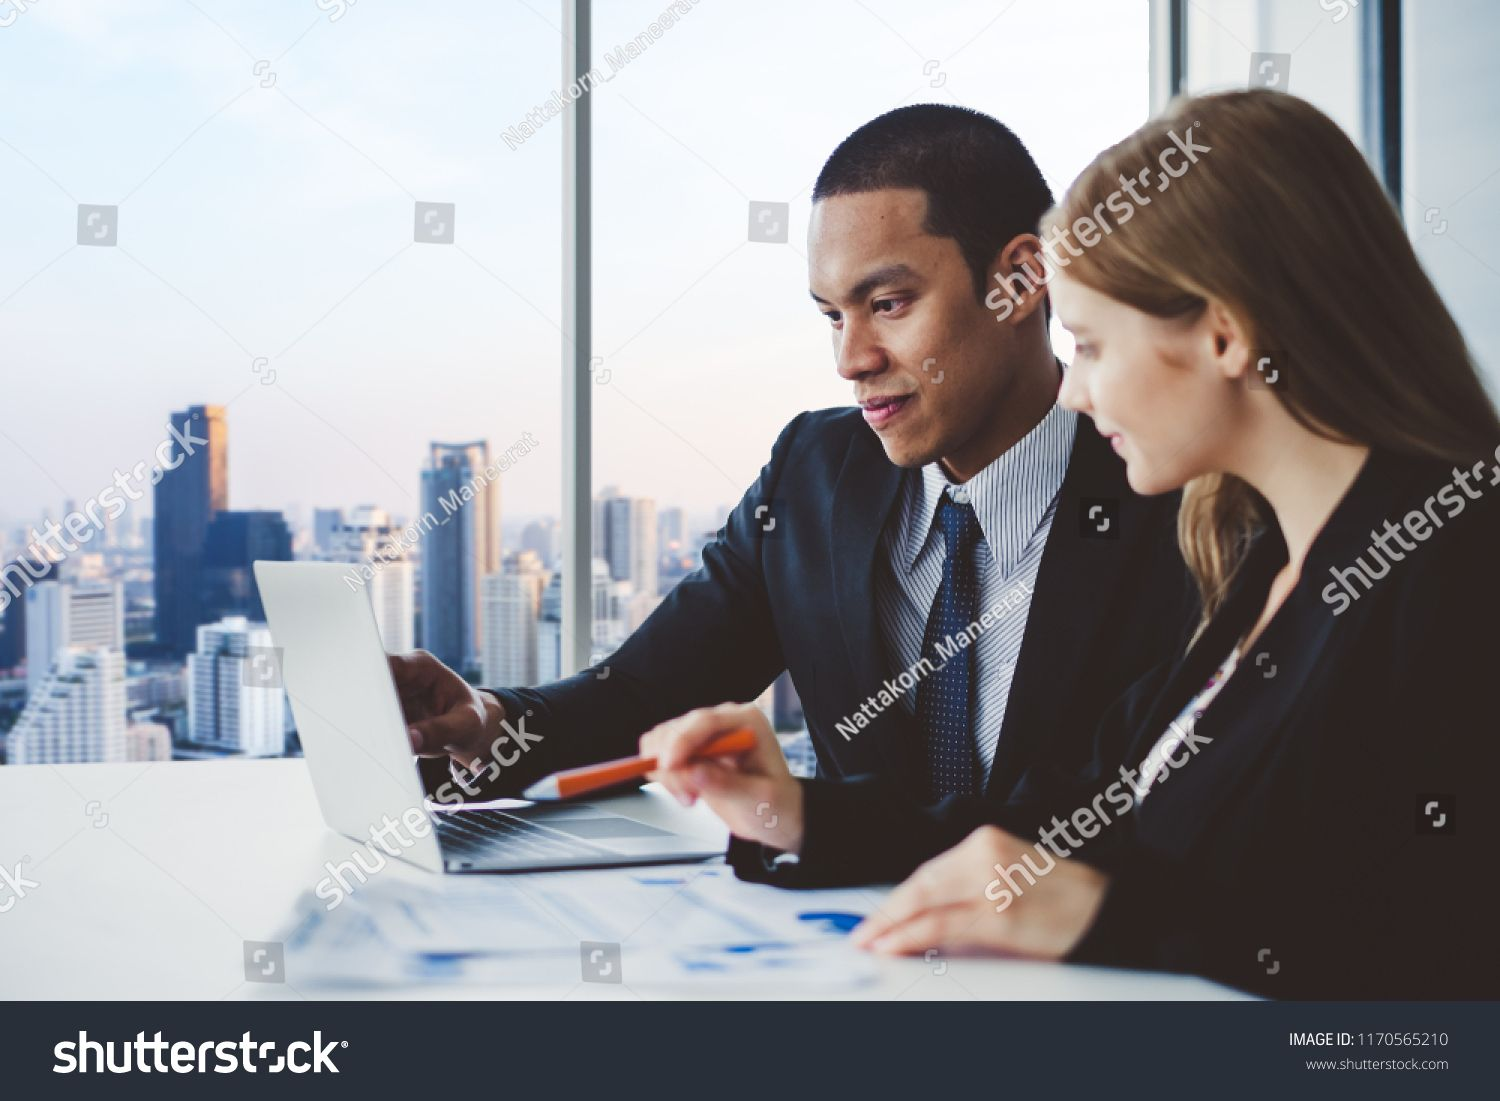 Business people discussing while meeting in office working with laptop